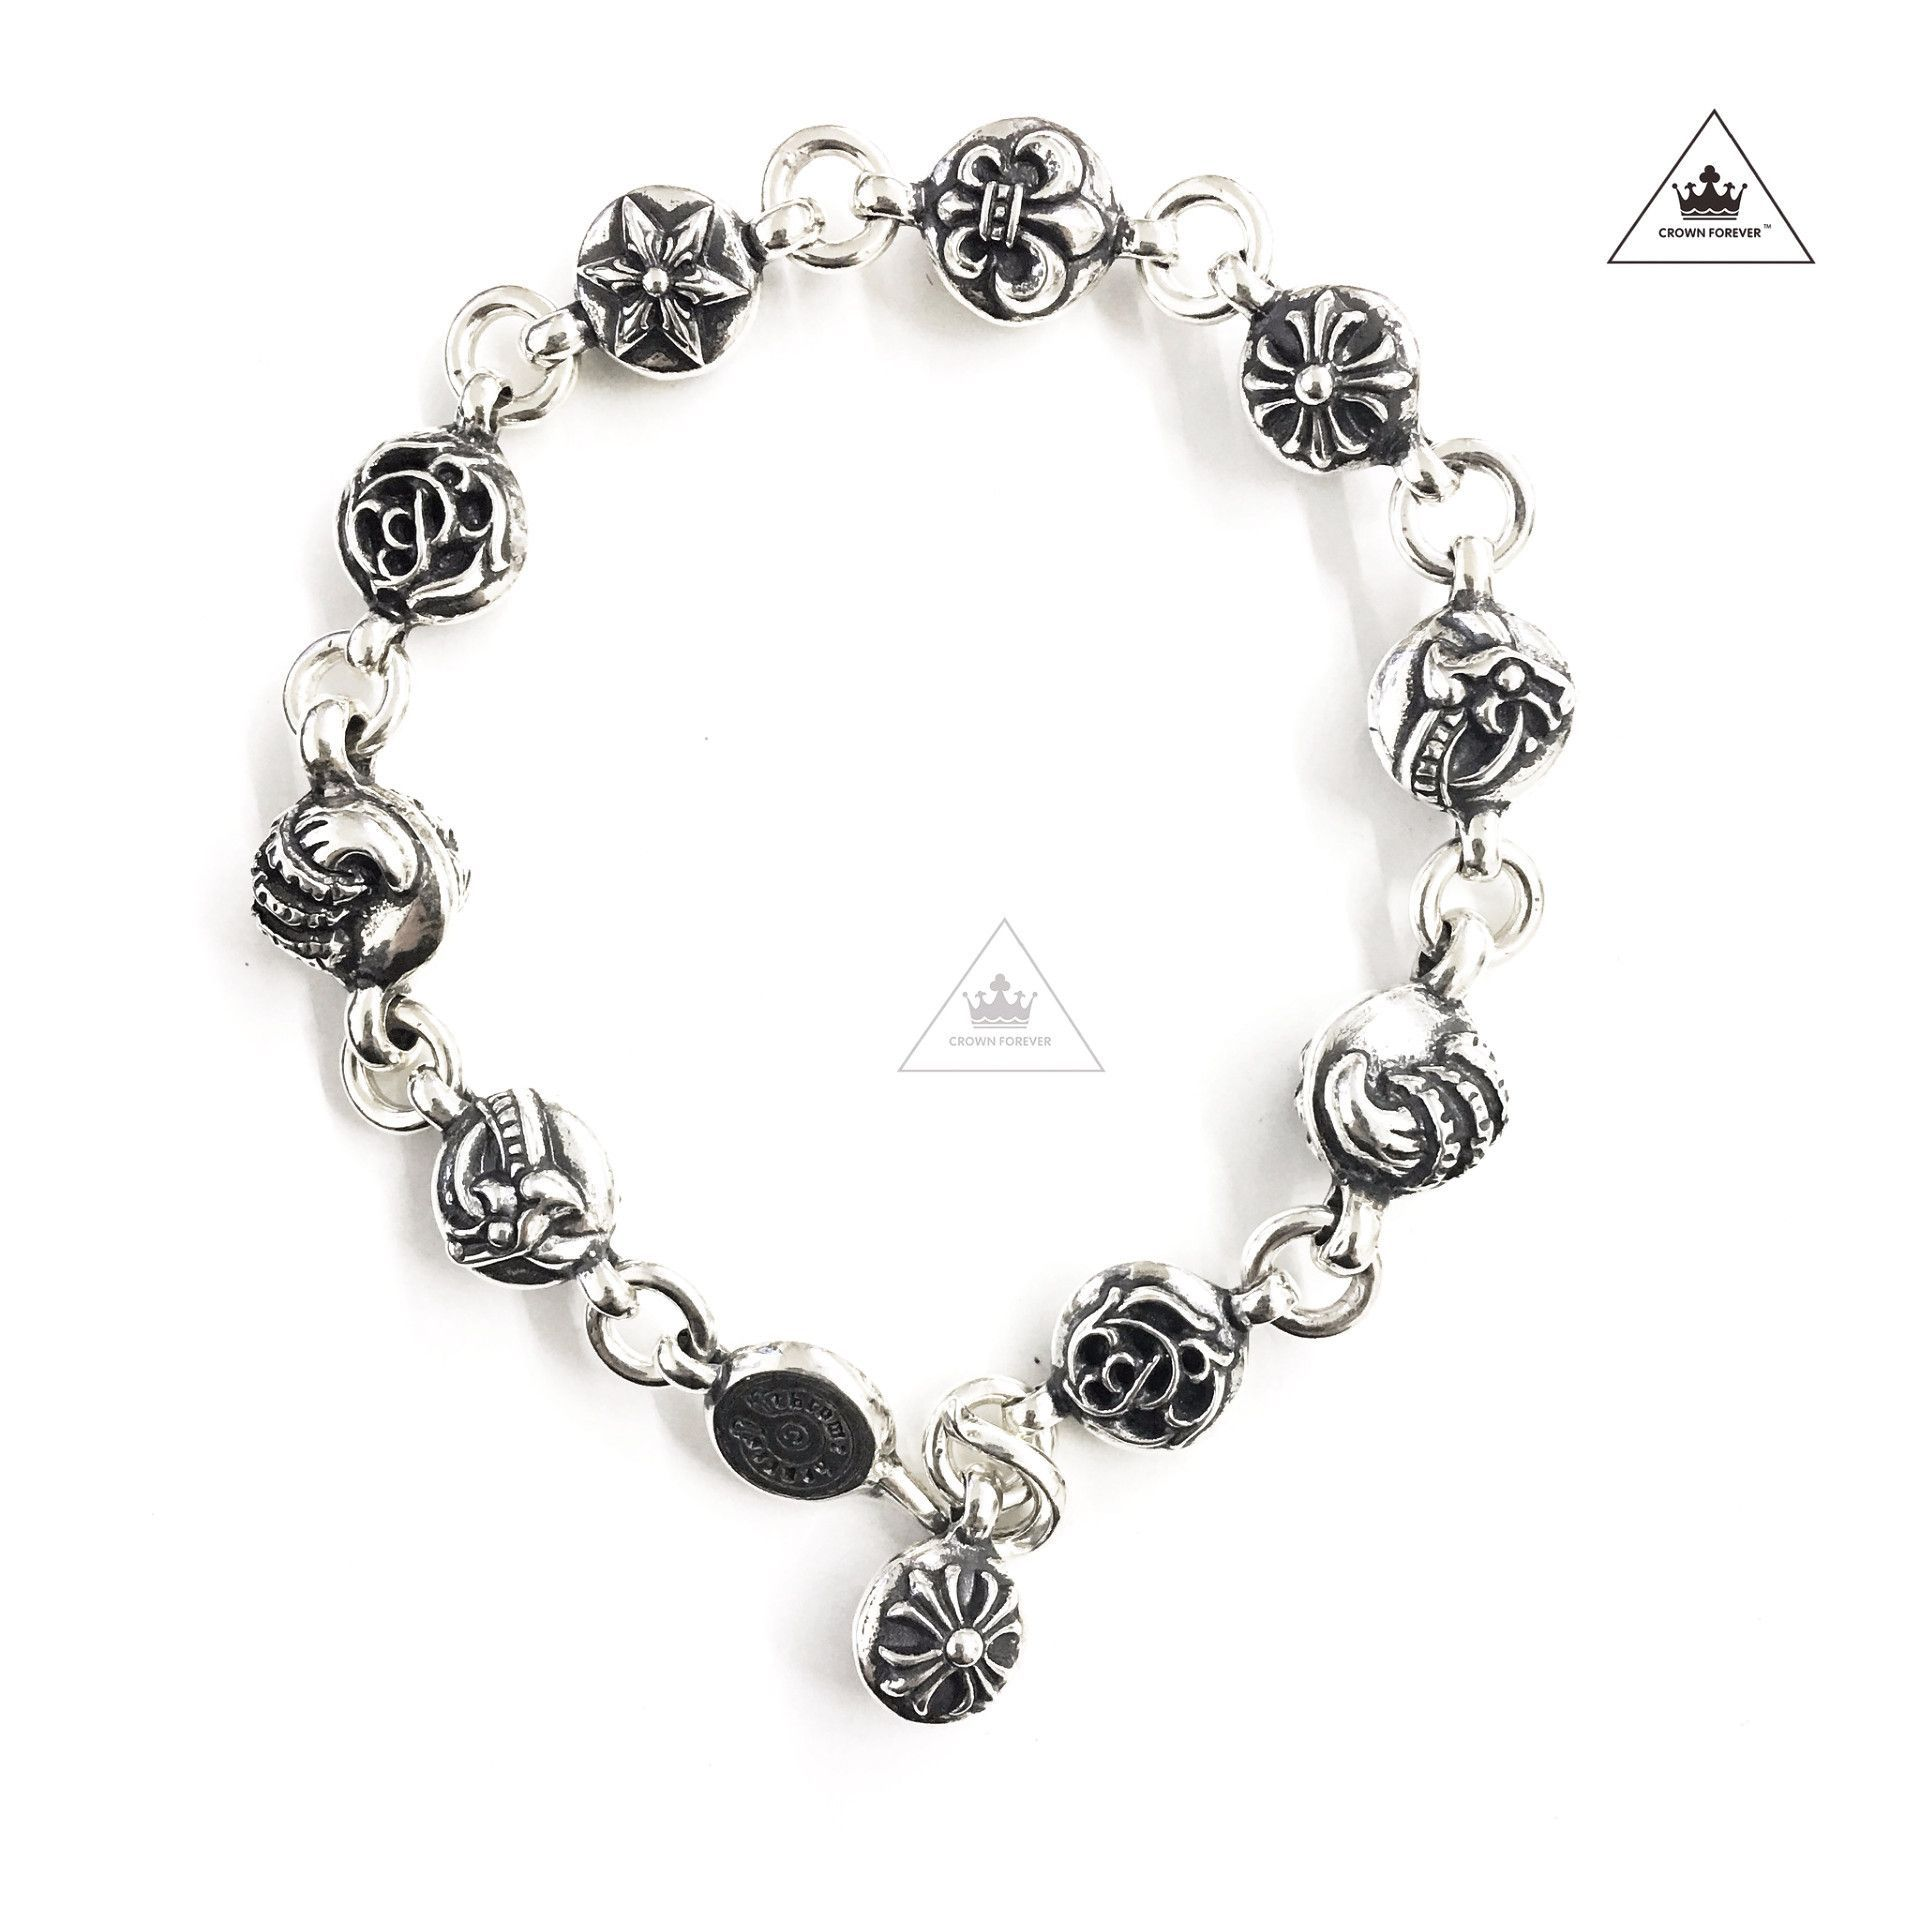 ac0761b837f8 ... Chrome Hearts Jewelry by Crown Forever. CH Multi Ball Bracelet